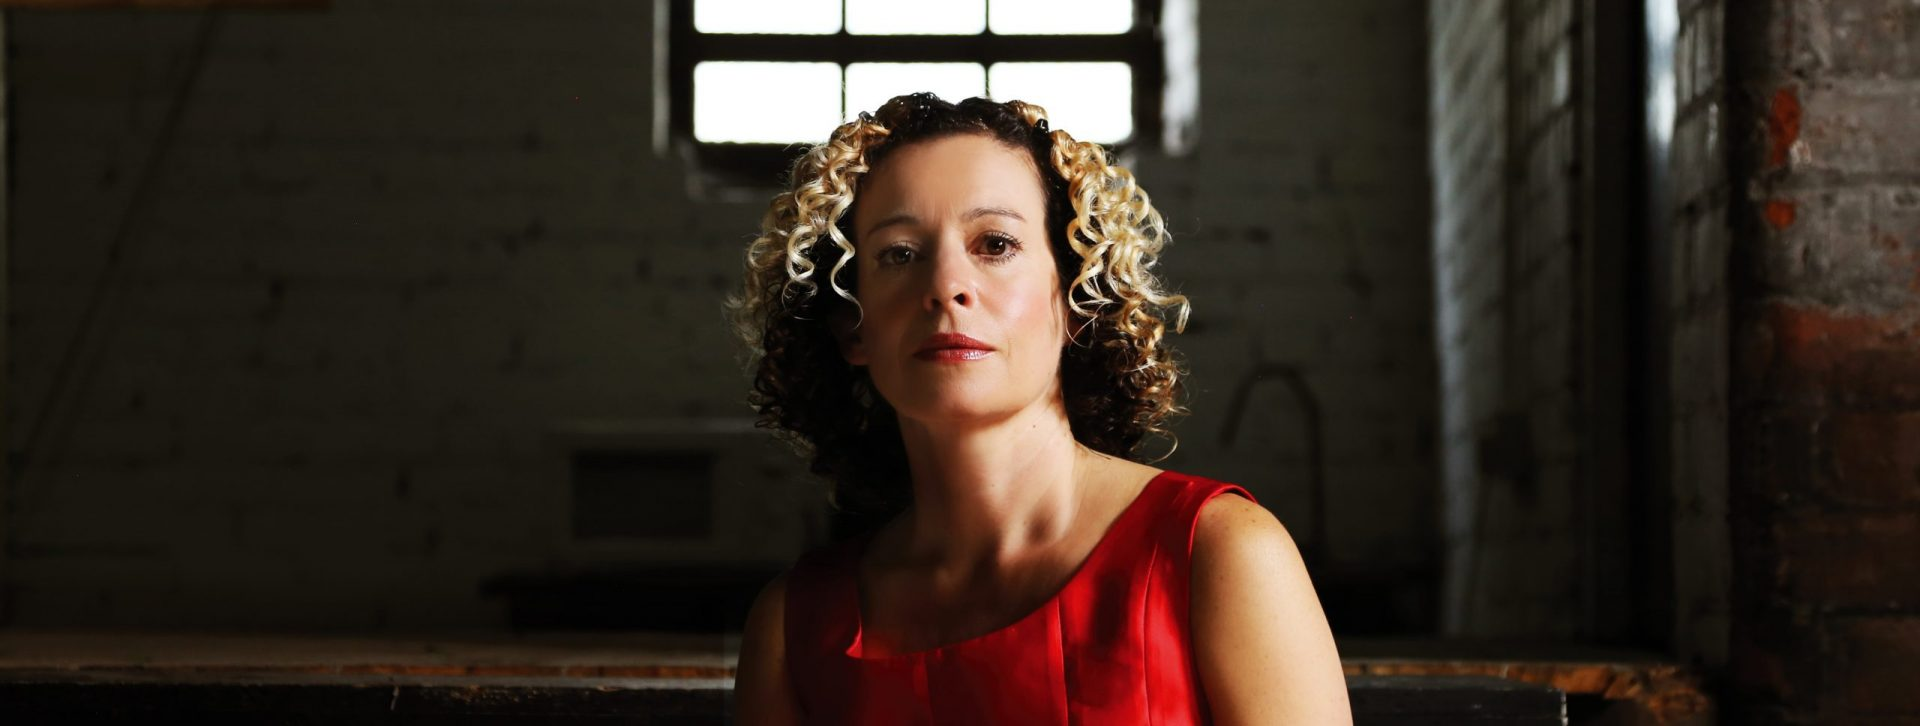 Kate Rusby: Spring Tour 2022